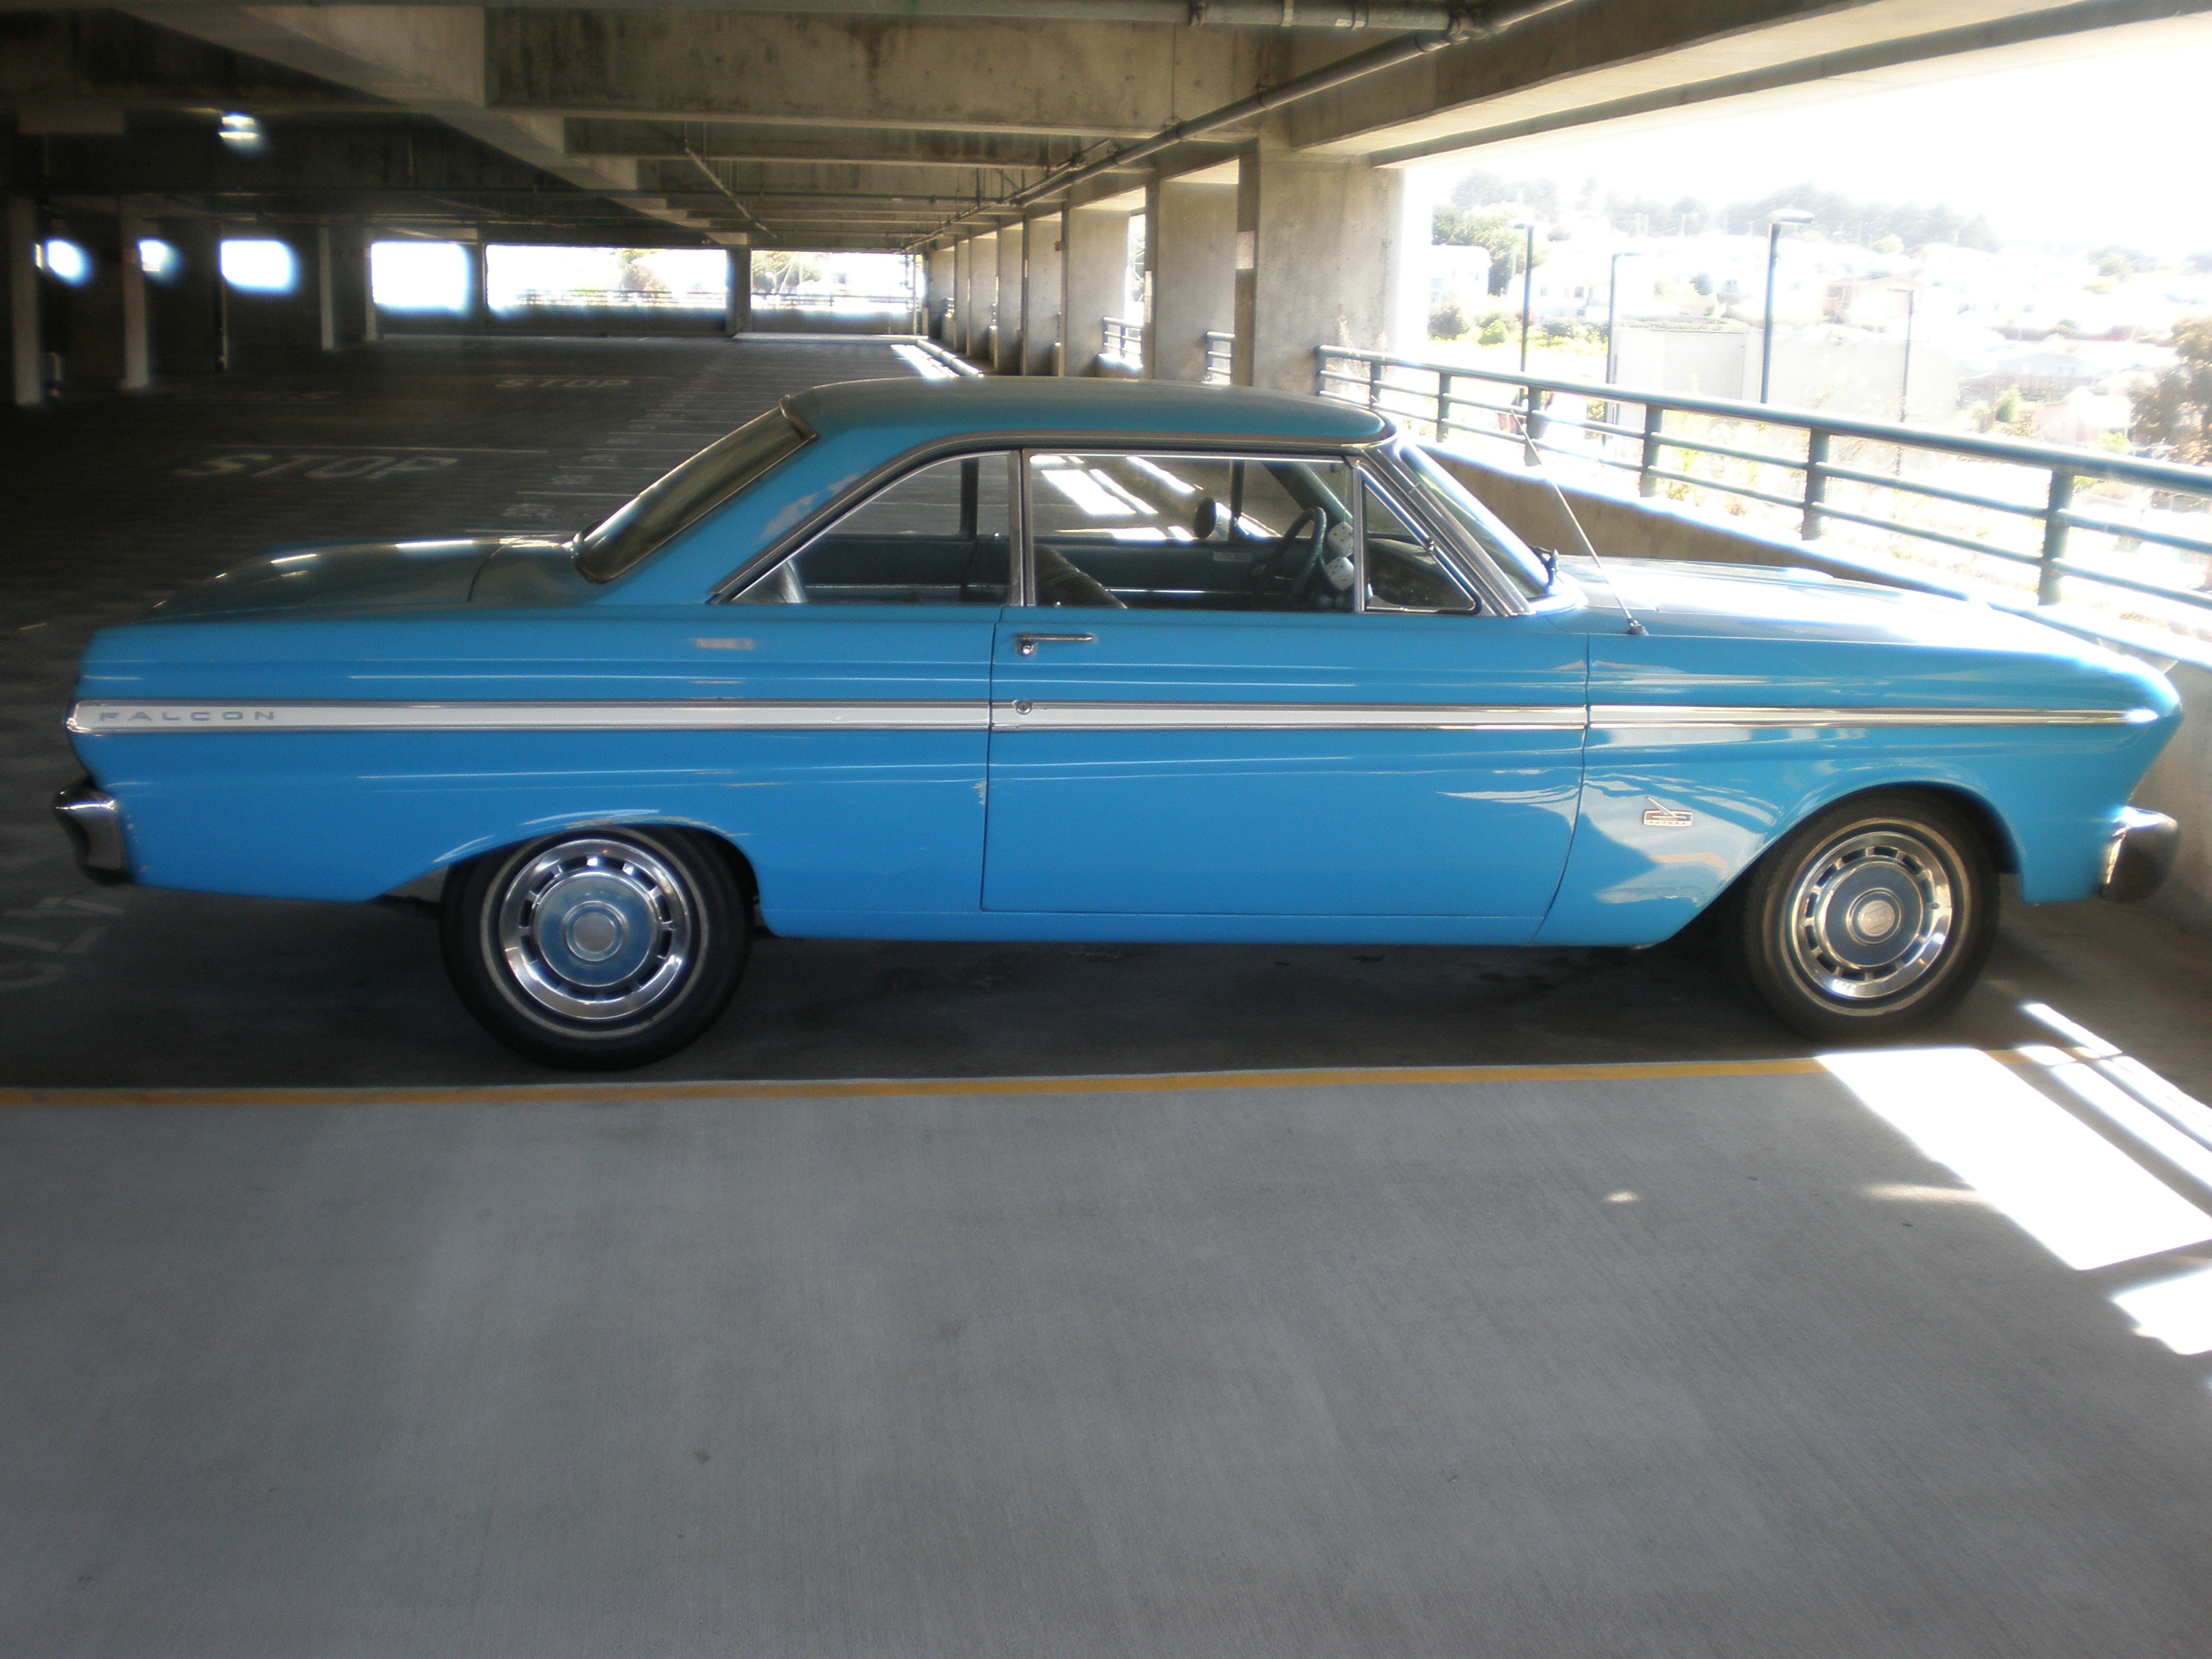 1963 Ford Galaxie Fastback besides 1964 Ford Falcon Custom also 1964 Nova Station Wagon also 1963 Ford Falcon Sprint further 2013 Ford GT40. on 1964 ford falcon